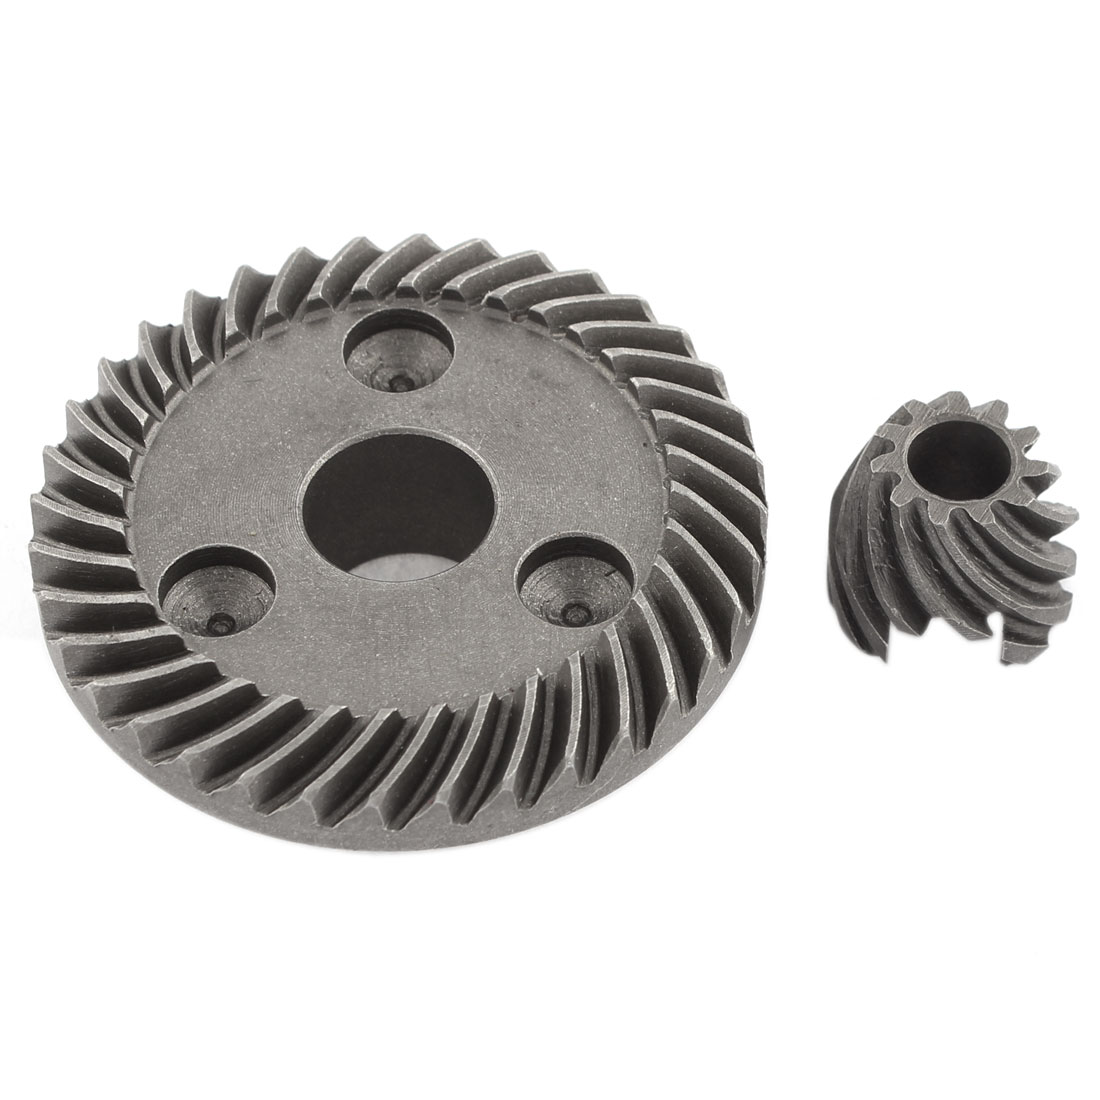 Electric Repairing Spiral Bevel Gear 36 Teehth Kit for Makita 9523 Angle Grinder